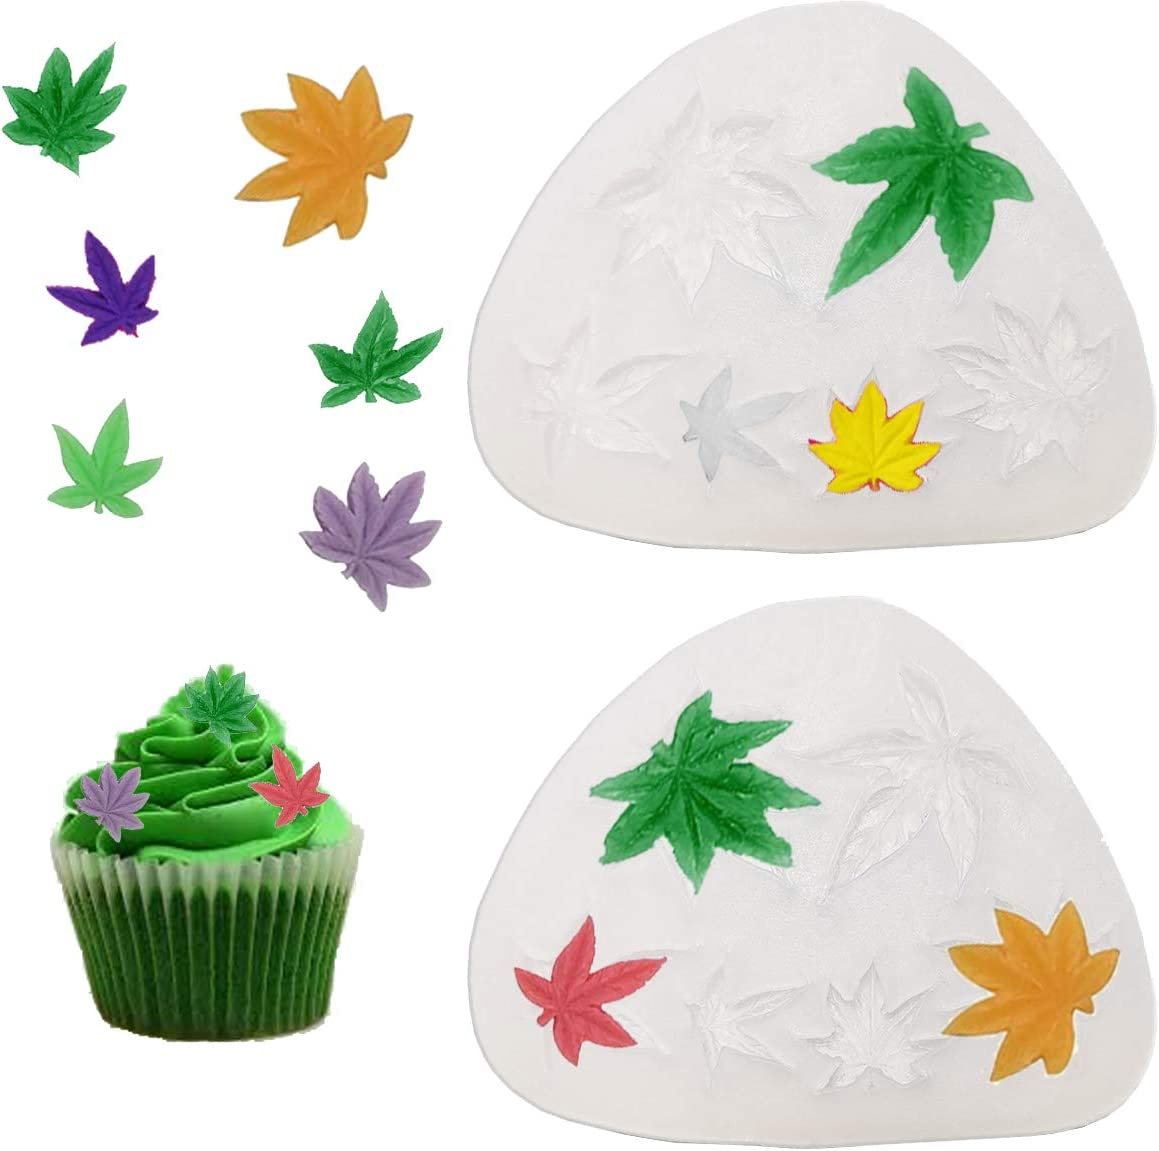 Antallcky 2 Pack Leaf Cake Fondant Mold Pot Leaves Silicone Mold for Cannabis Weed Hemp Leaf Theme Cake Decoration, Chocolate Candy Polymer Clay Cookie Sugar Craft Projects-Transparent White